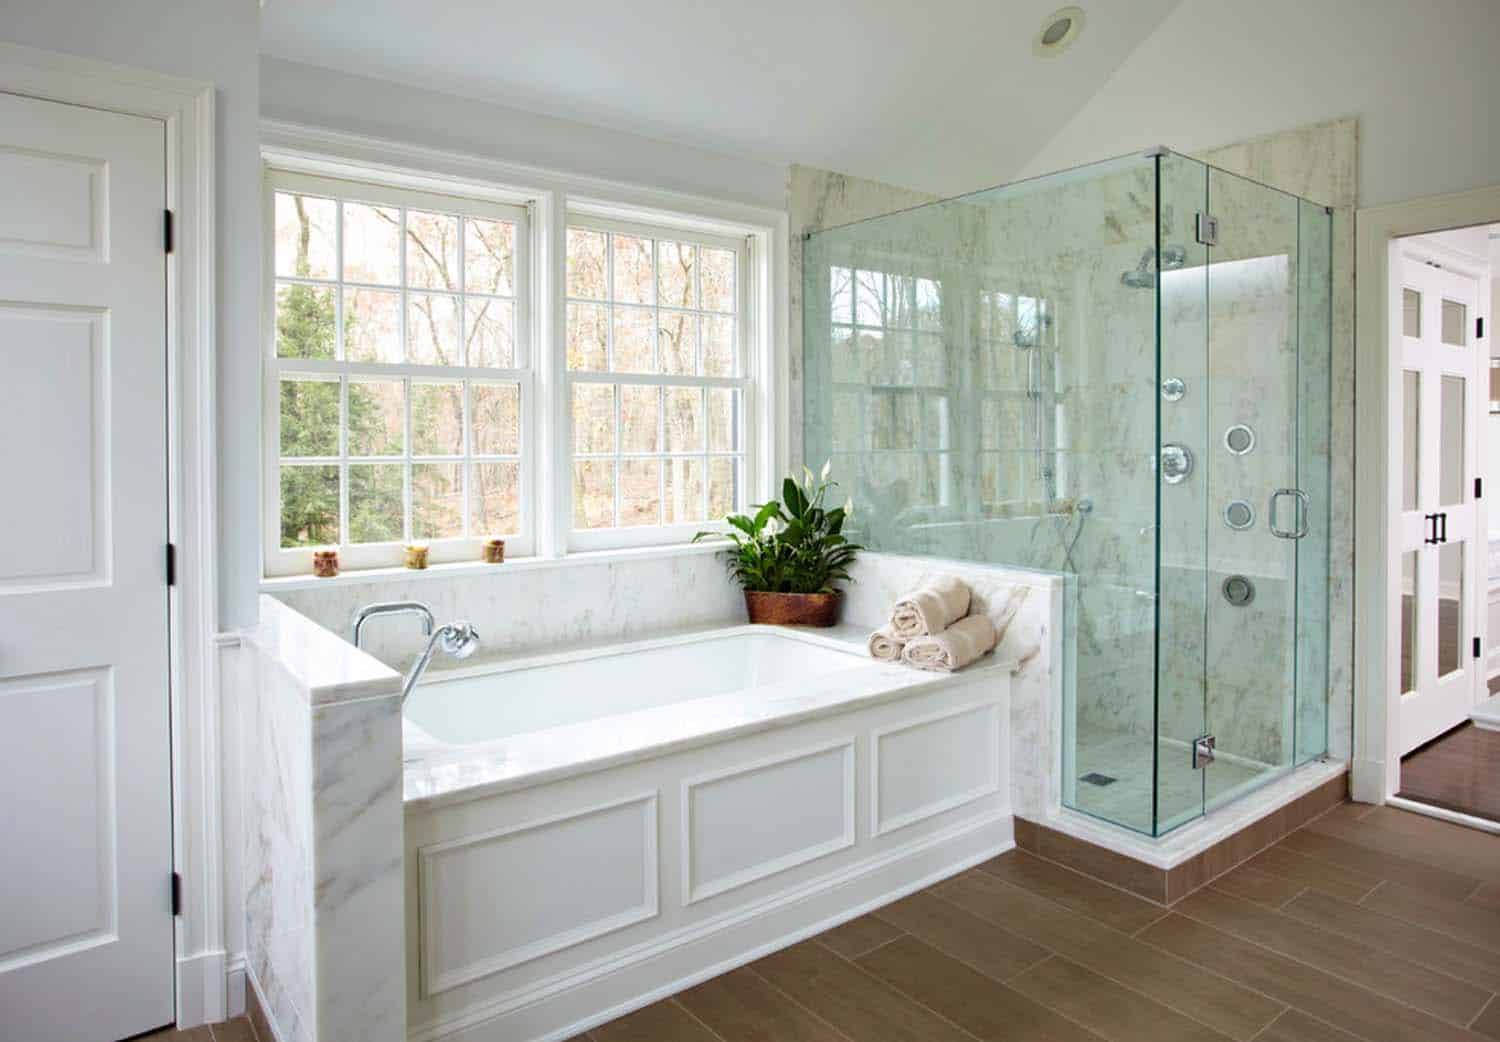 New Style Bathroom Designs 53 Most Fabulous Traditional Style Bathroom Designs Ever